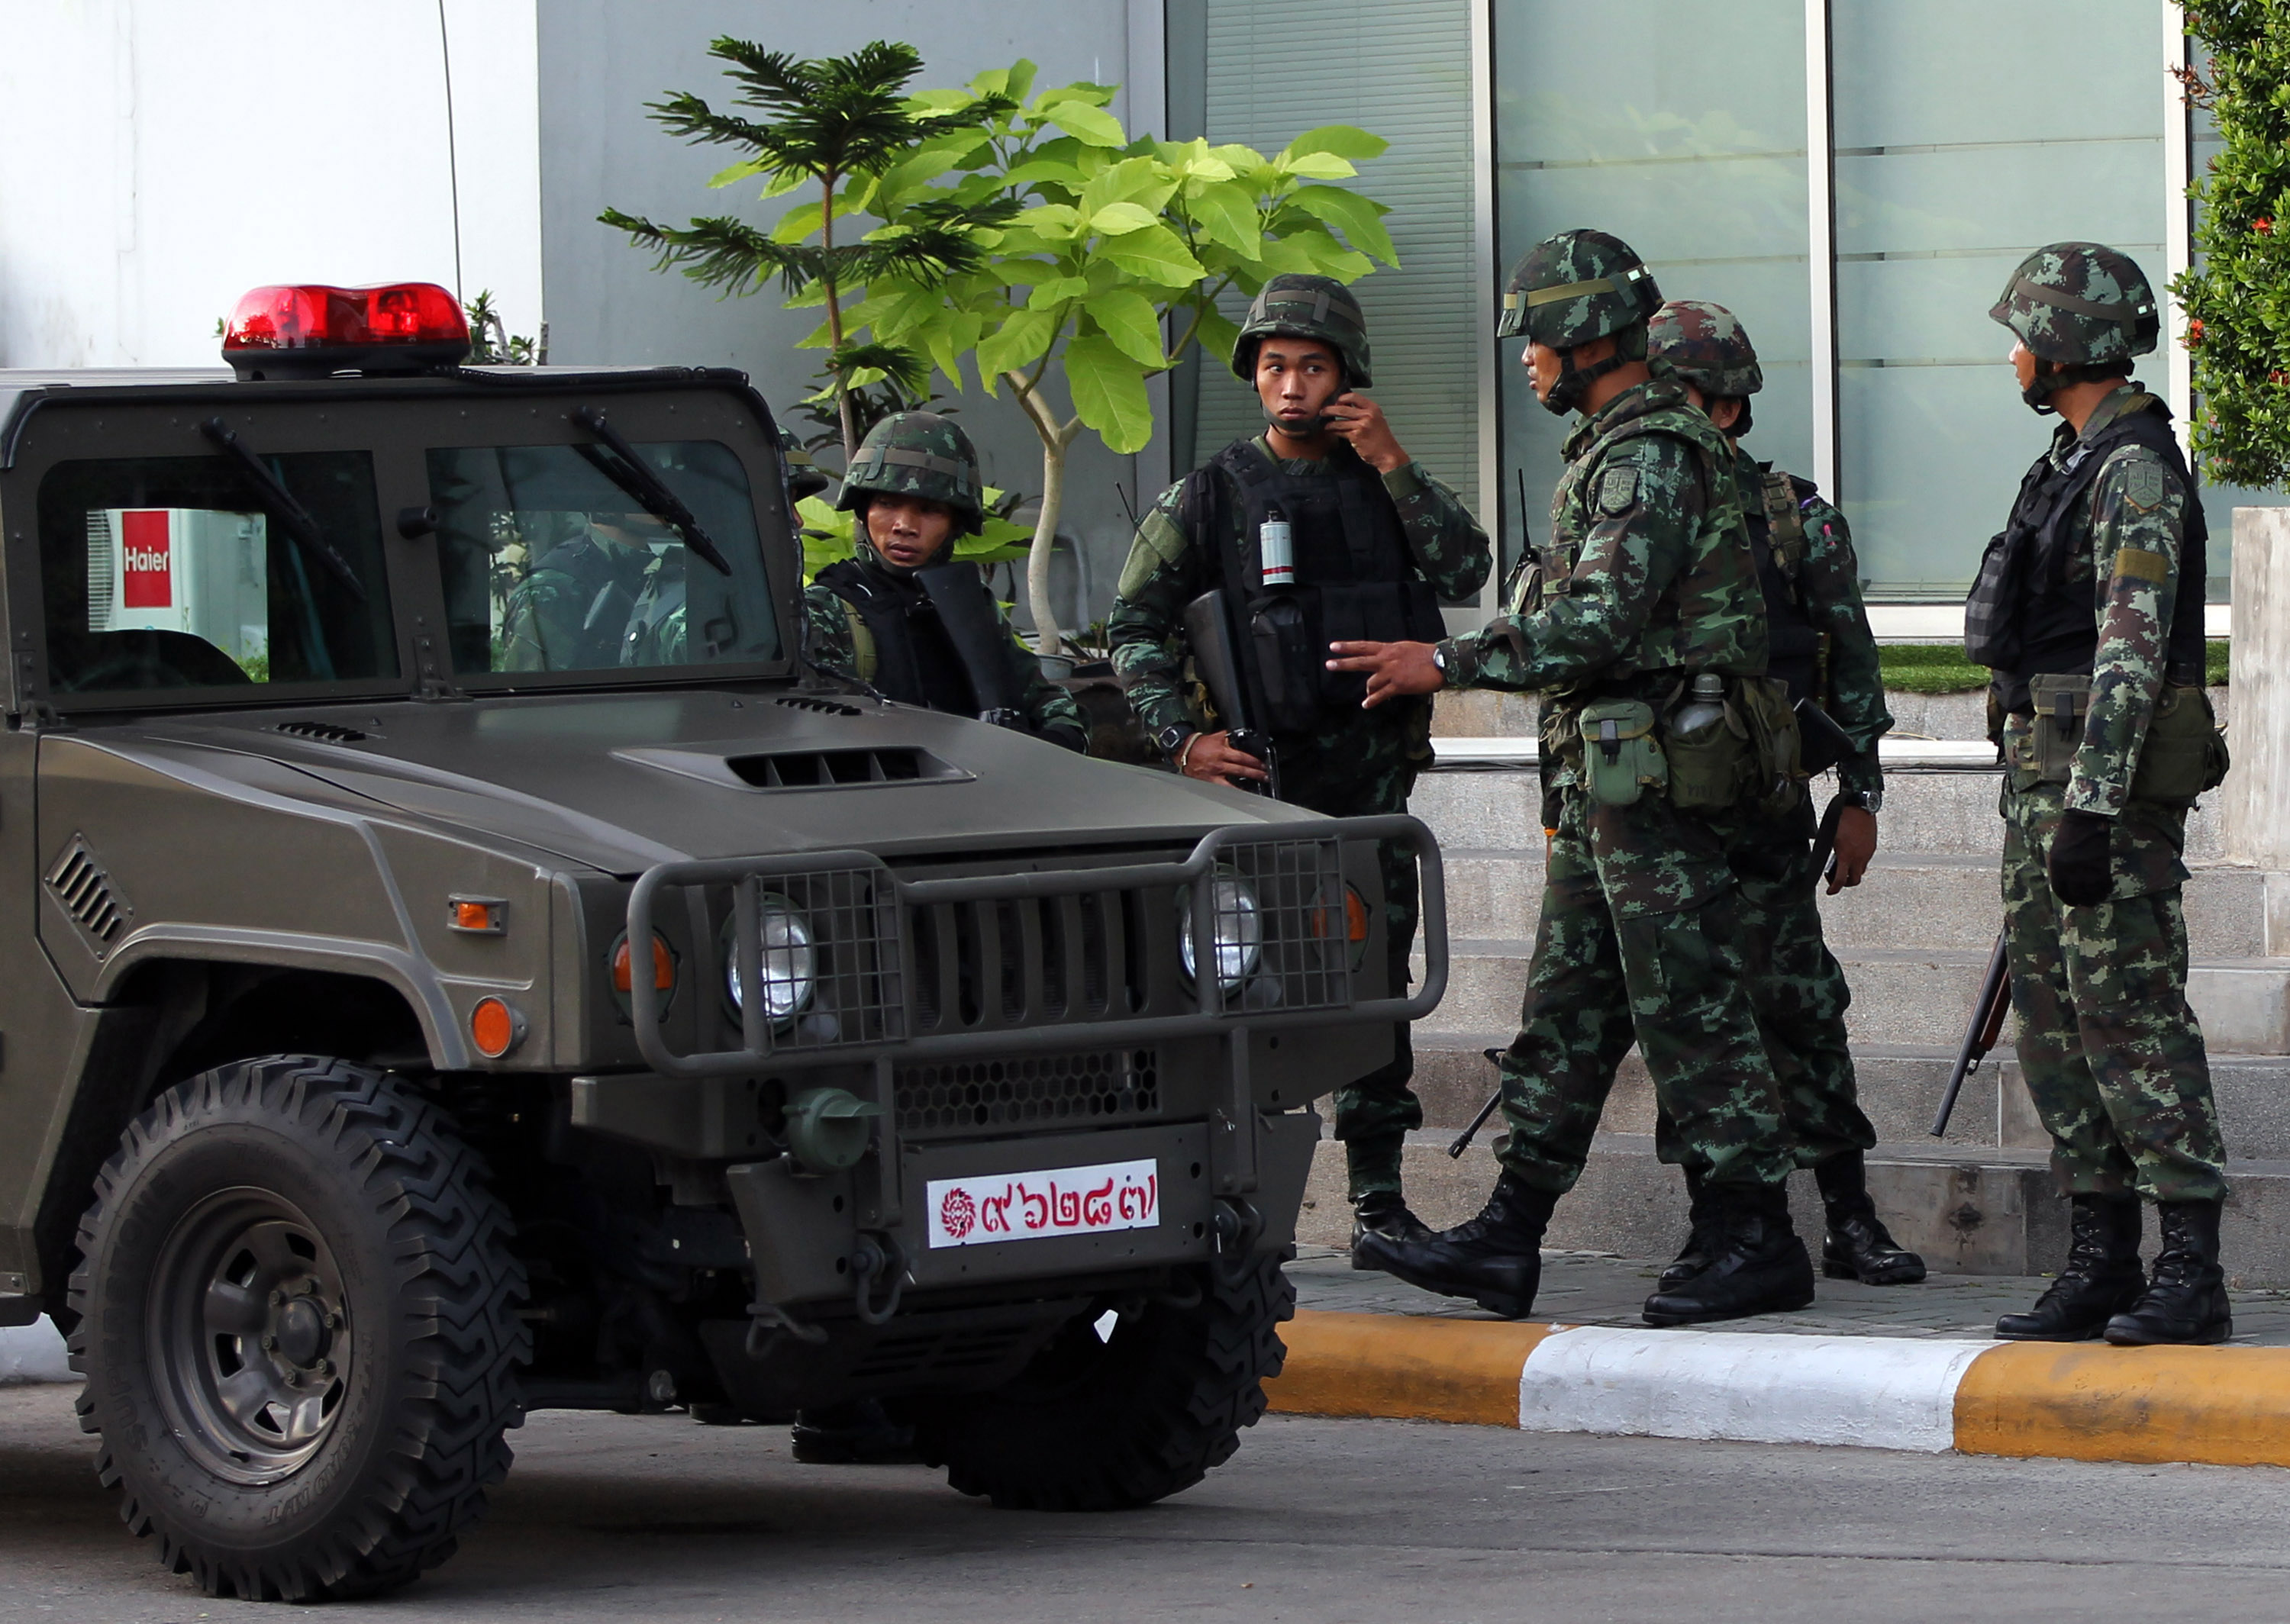 Thai soldiers gather after arriving outside the building of the National Broadcasting Services of Thailand in Bangkok on May 20, 2014